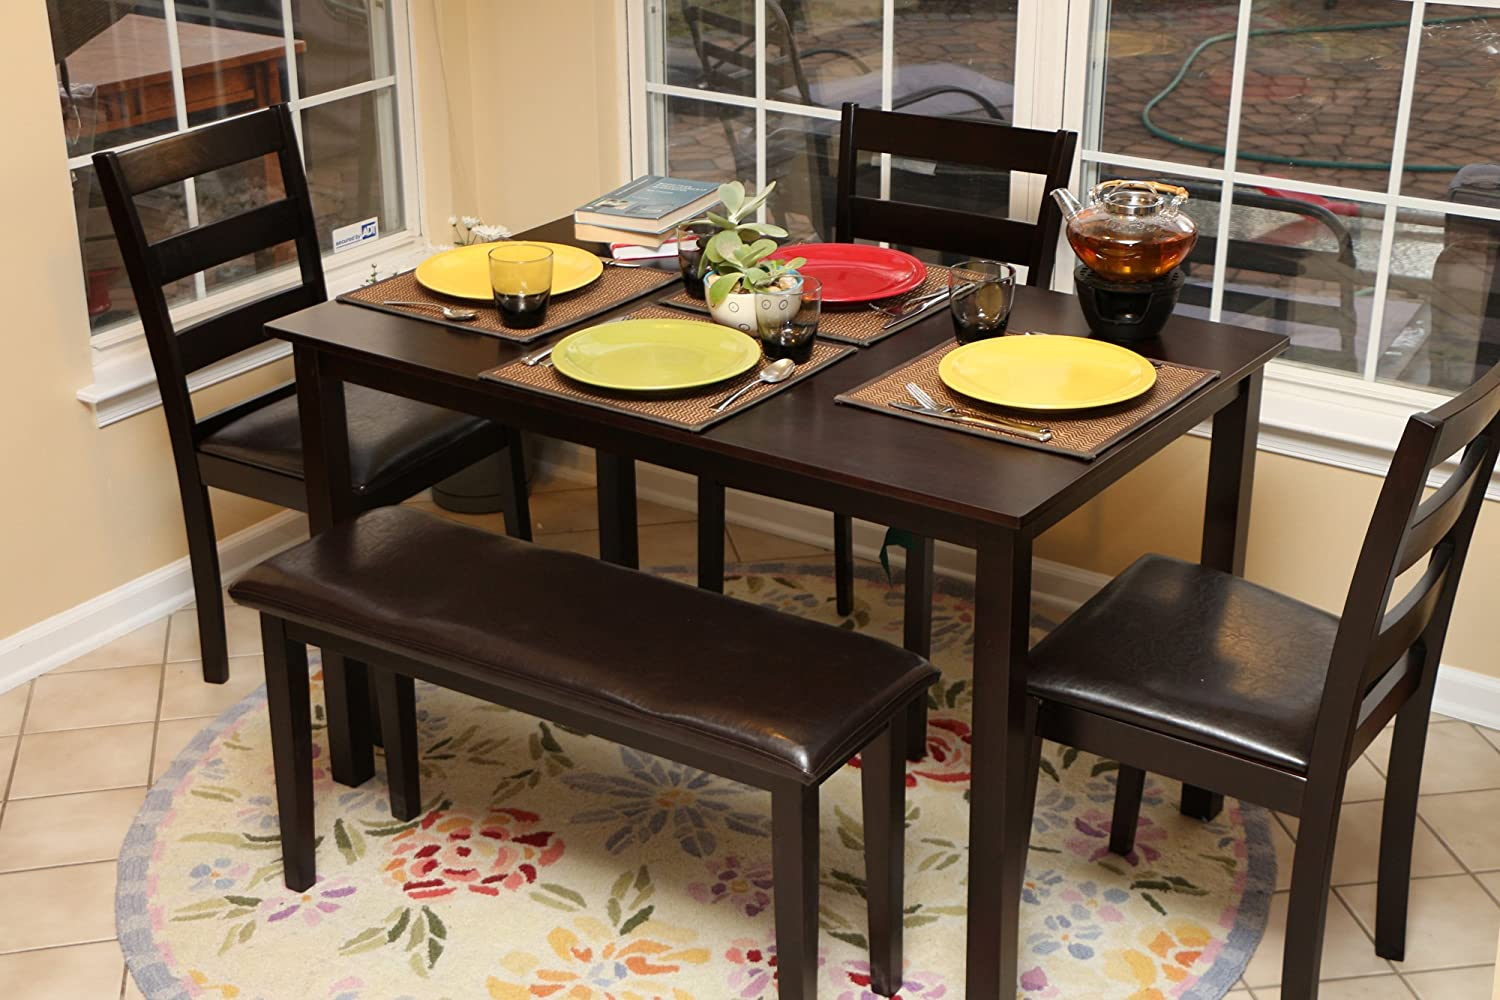 Amazon.com - Home Life 5pc Dining Dinette Table Chairs \u0026 Bench Set Espresso Finish 150236 - Table \u0026 Chair Sets : brown dining table set - pezcame.com